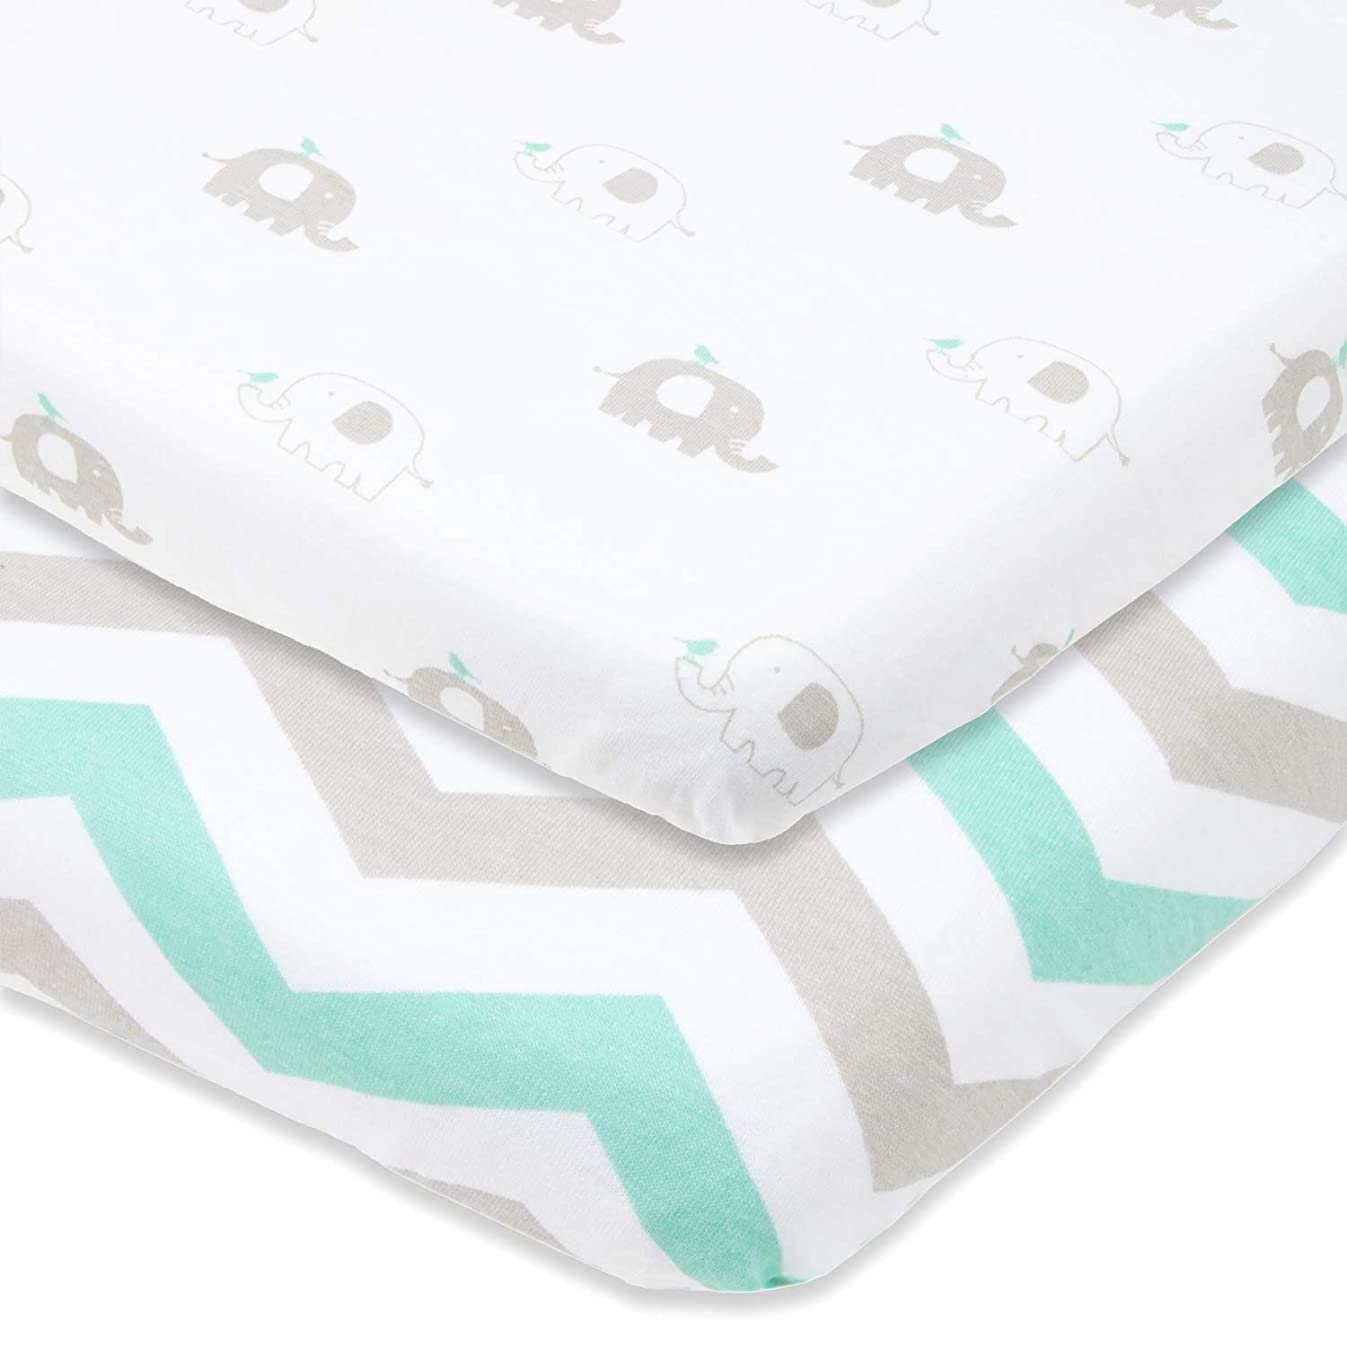 Bassinet Sheets Set 2 Pack for Boy & Girl by Cuddly Cubs | Soft & Breathable 100% Jersey Cotton | Fitted Elastic Design | Mint & Grey Chevron & Elephant | Fits Oval, Halo, Chicco Lullago, Bjorn, Lotus